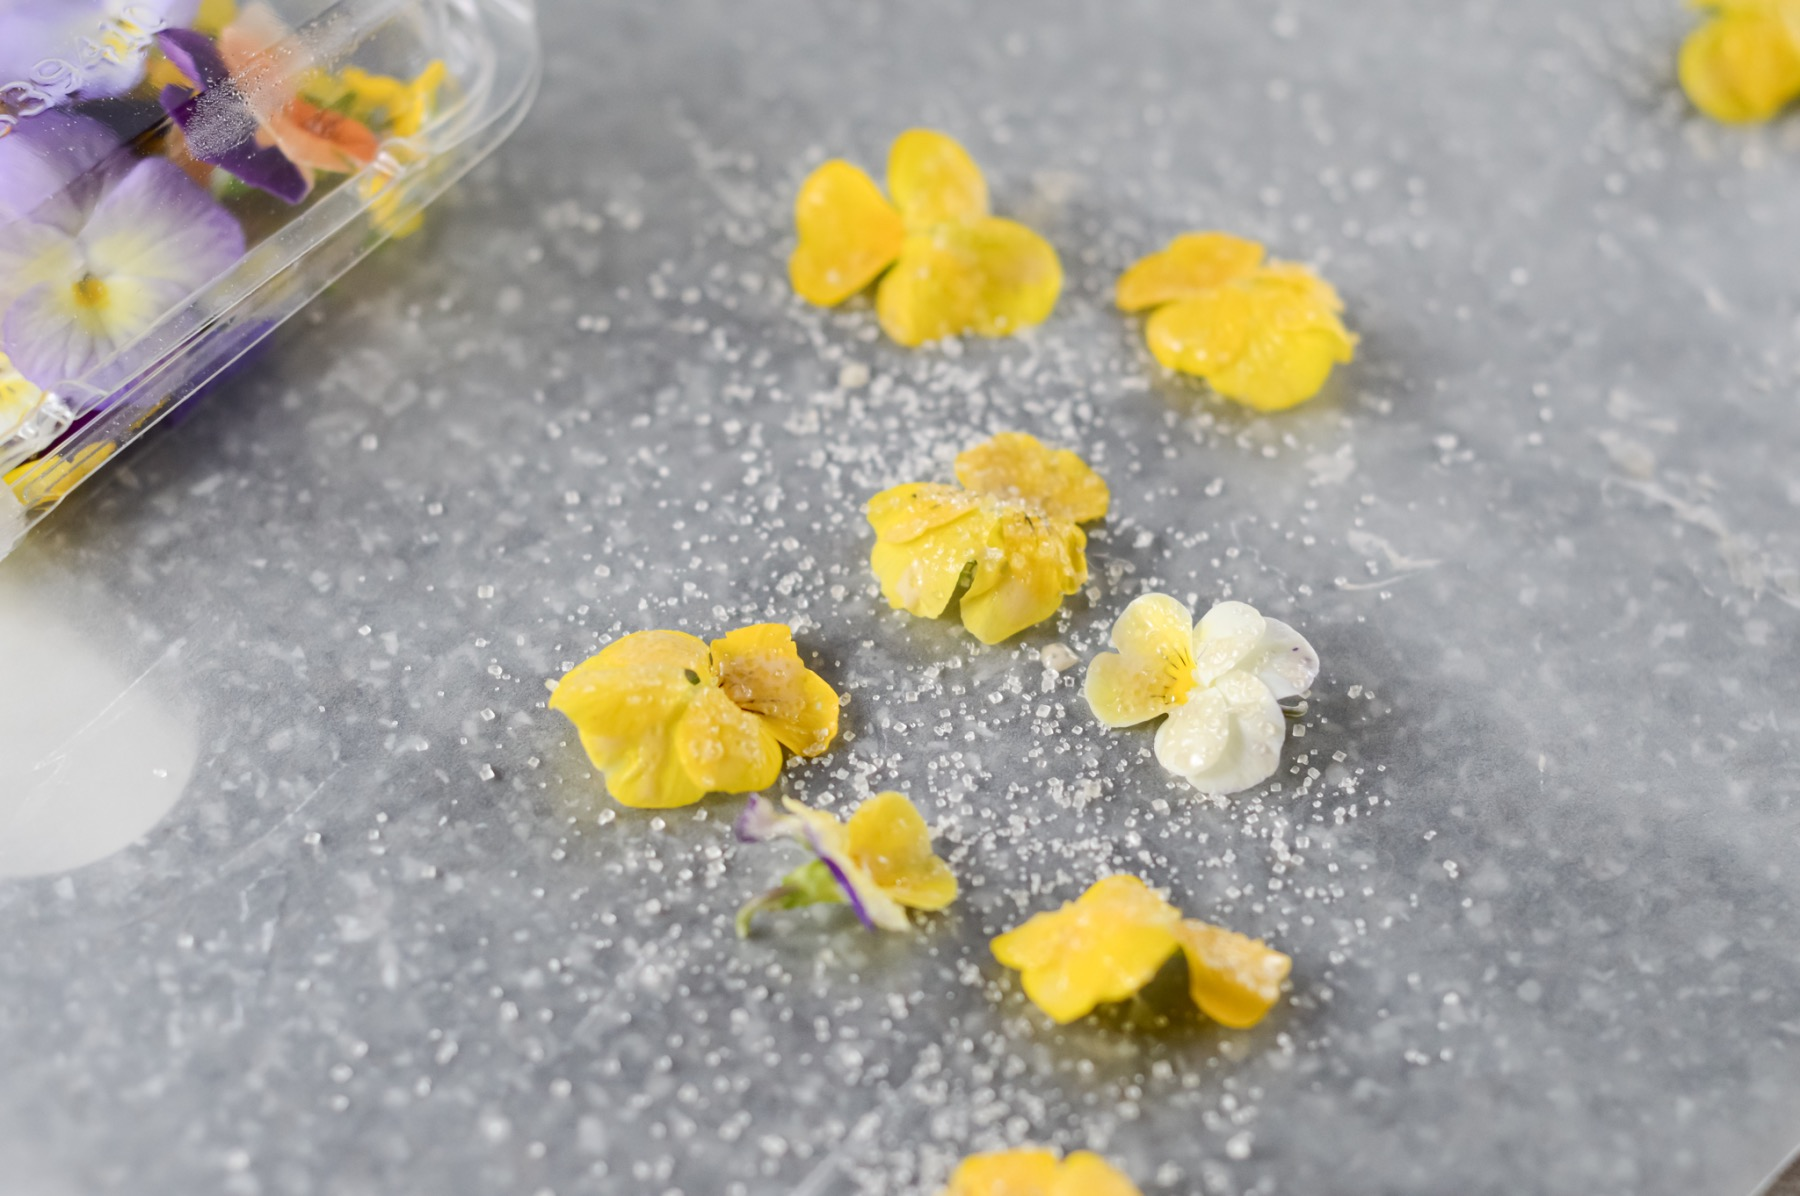 lay the flowers on parchment to make candied flowers